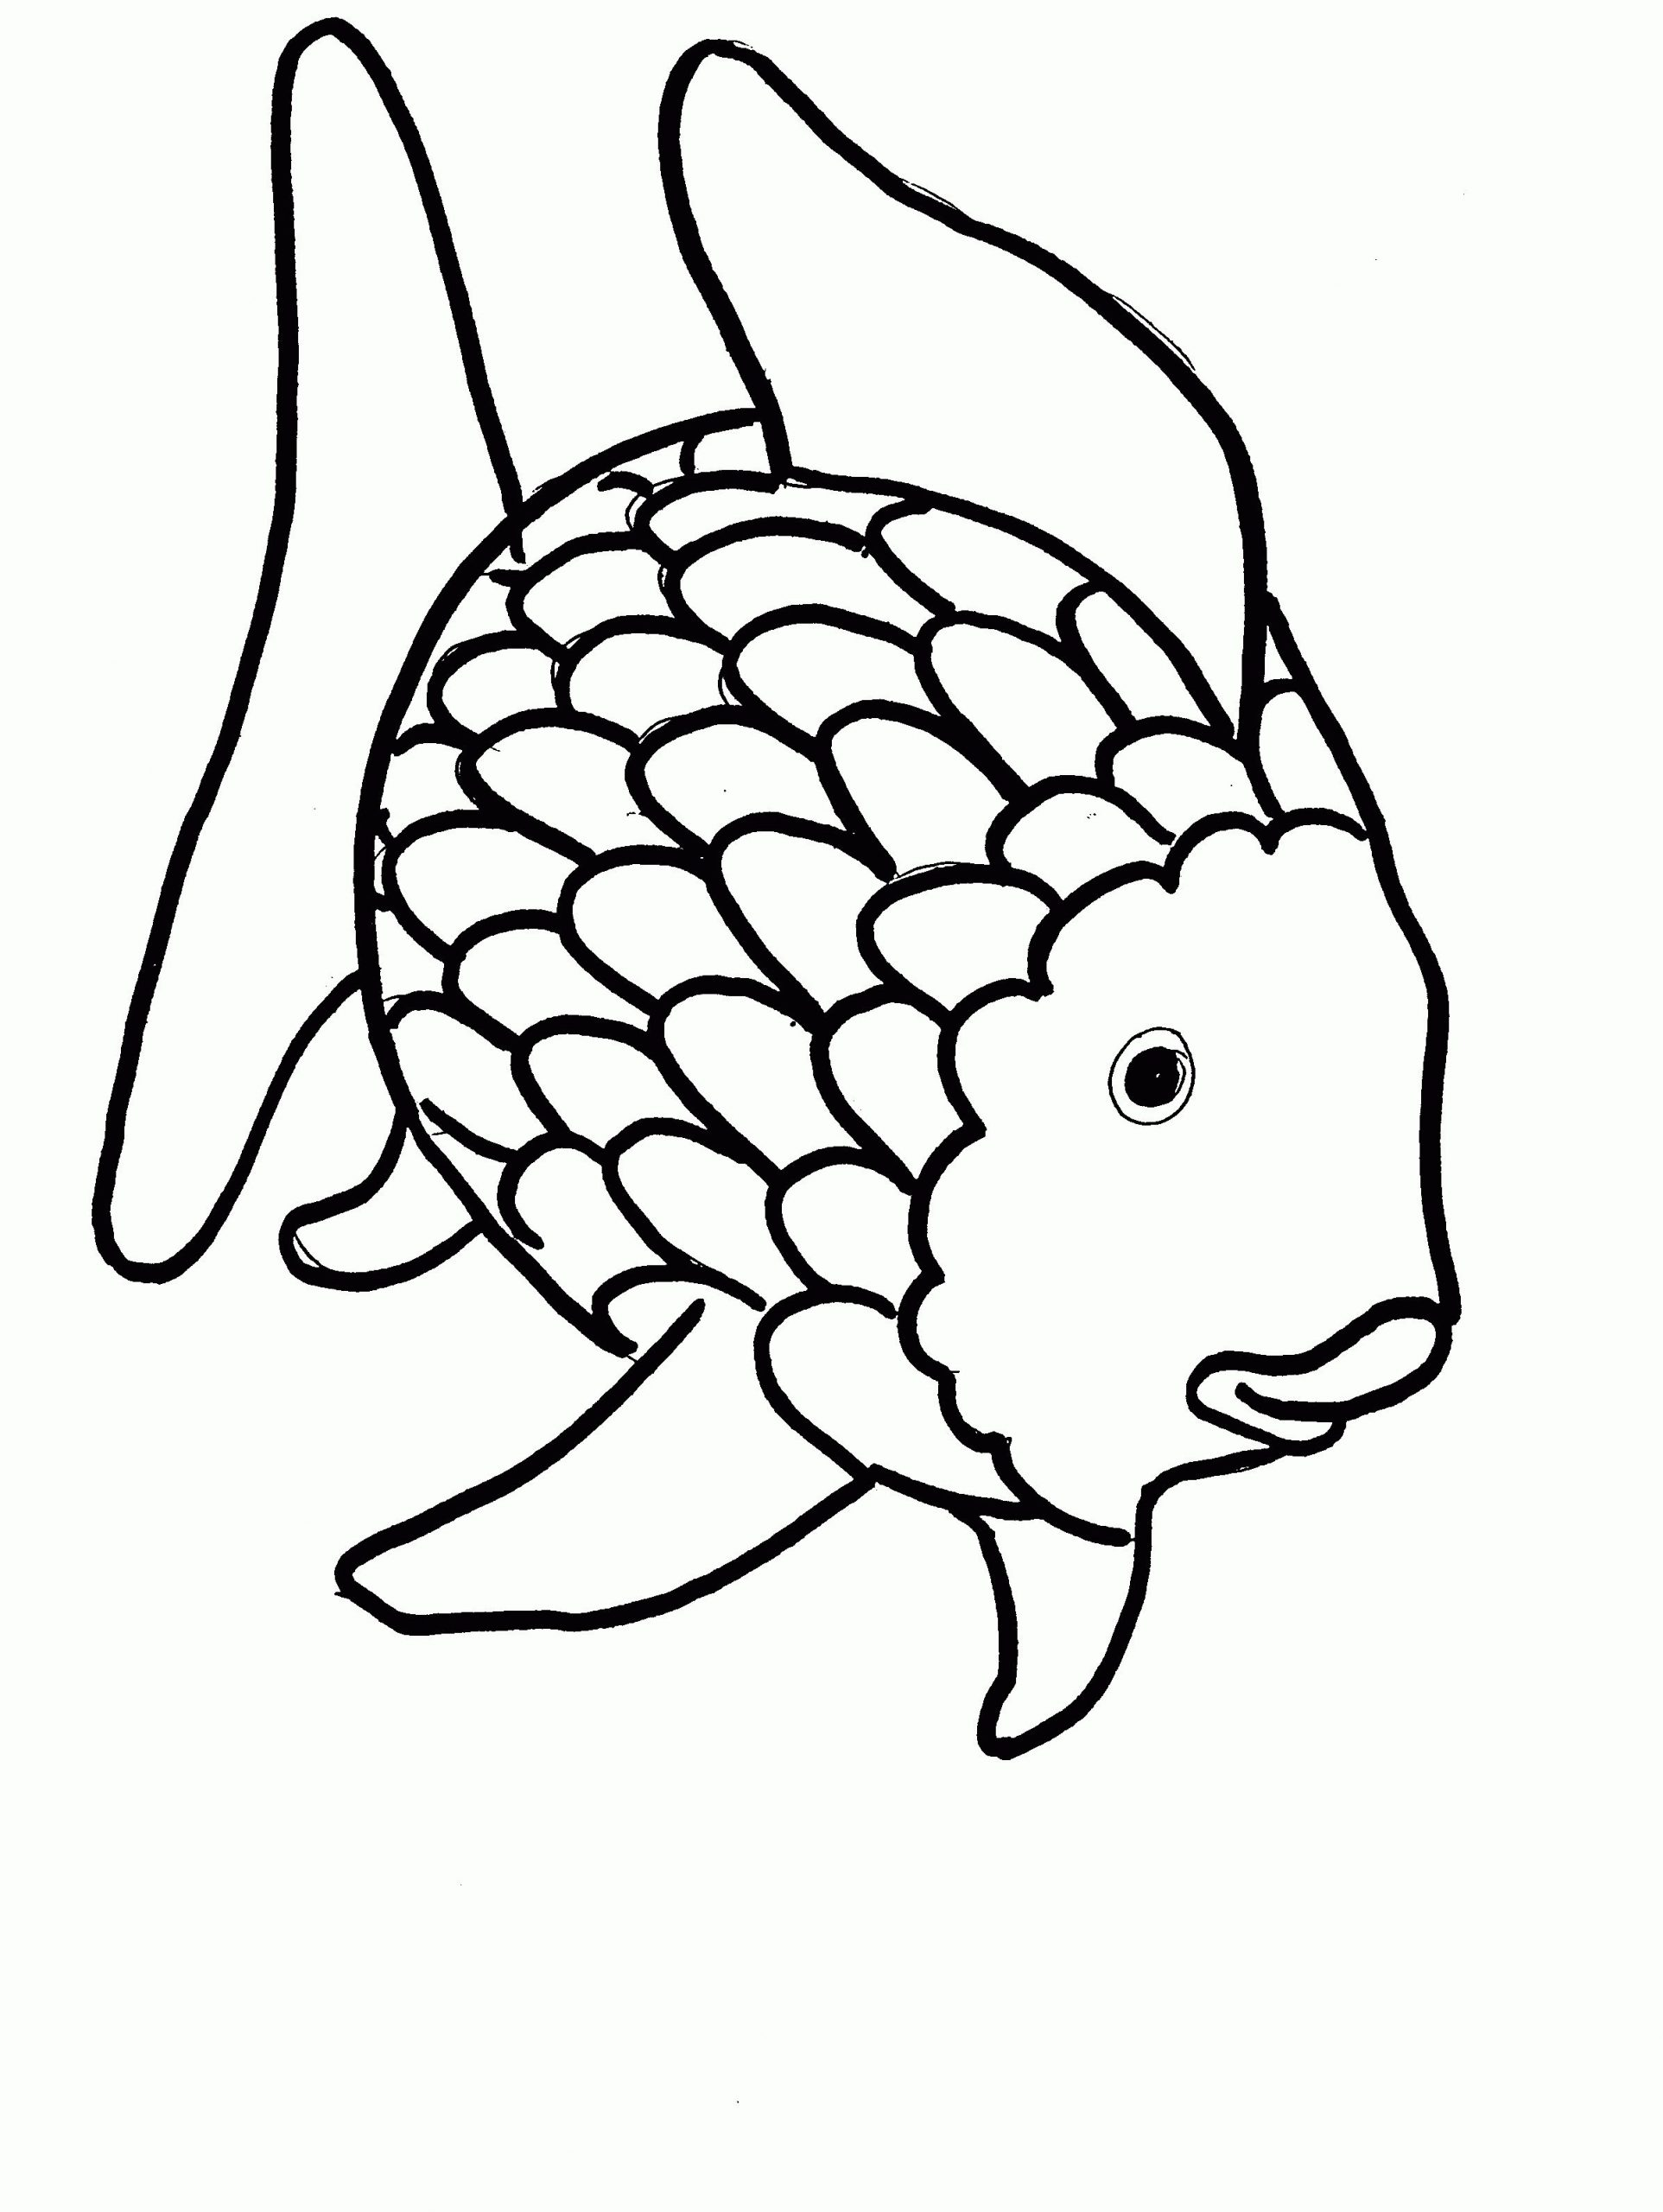 Coloriage Arc En Ciel Poisson | Coloriage Arc En Ciel, Coloriage destiné Arc En Ciel A Colorier